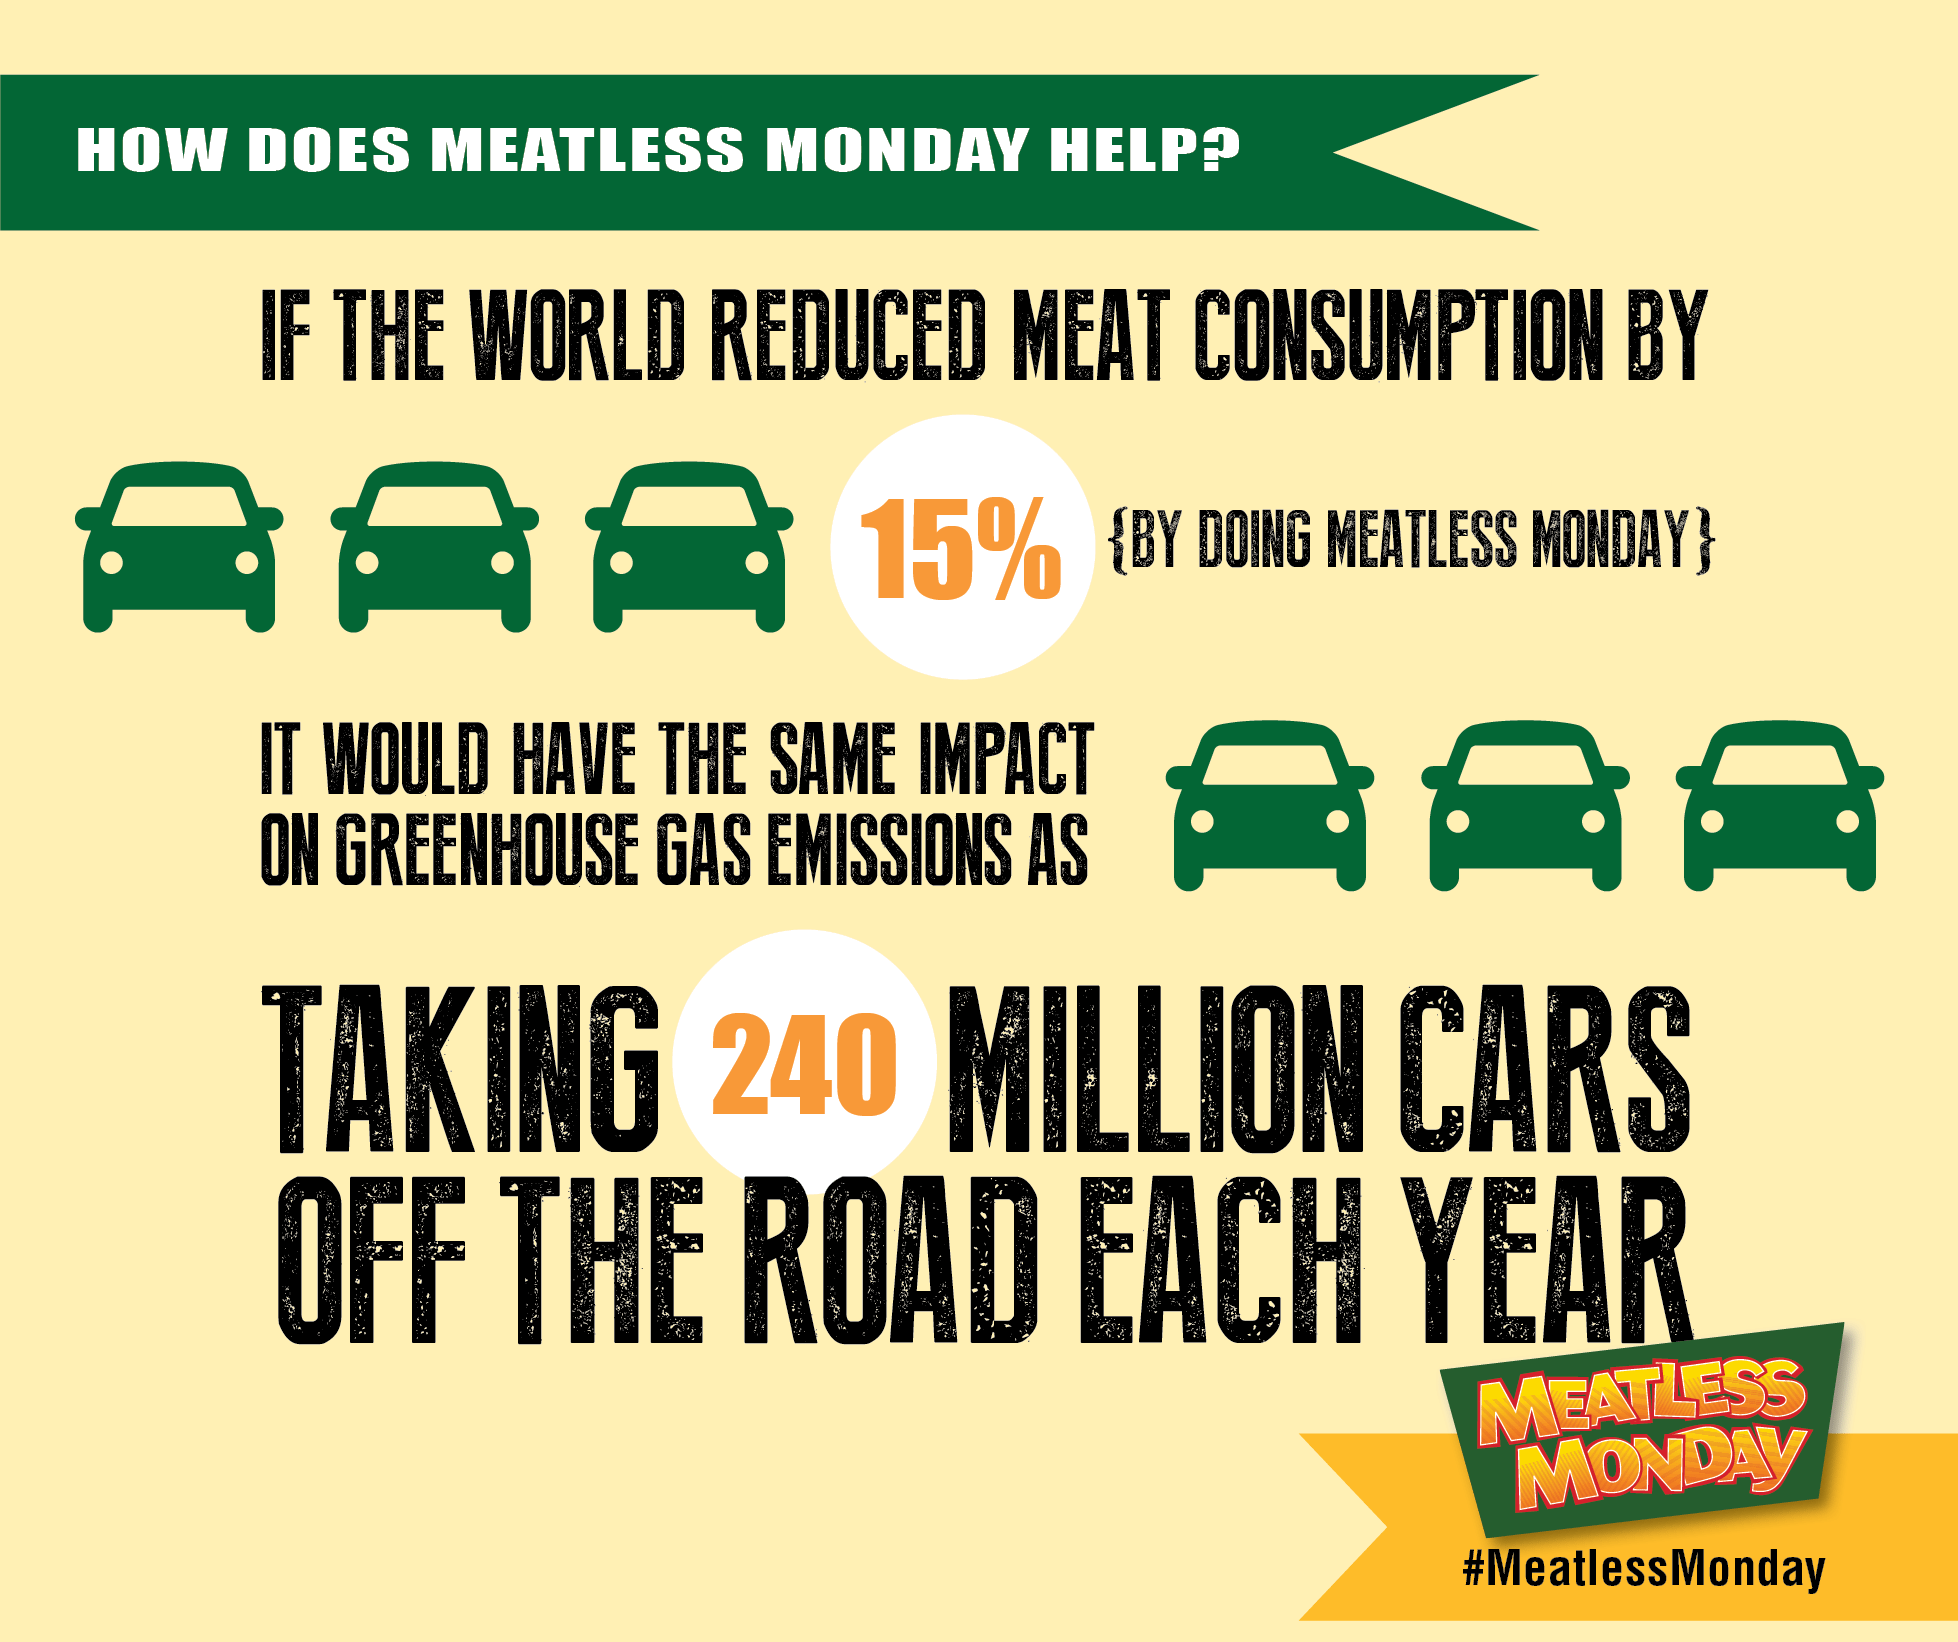 meatless-monday